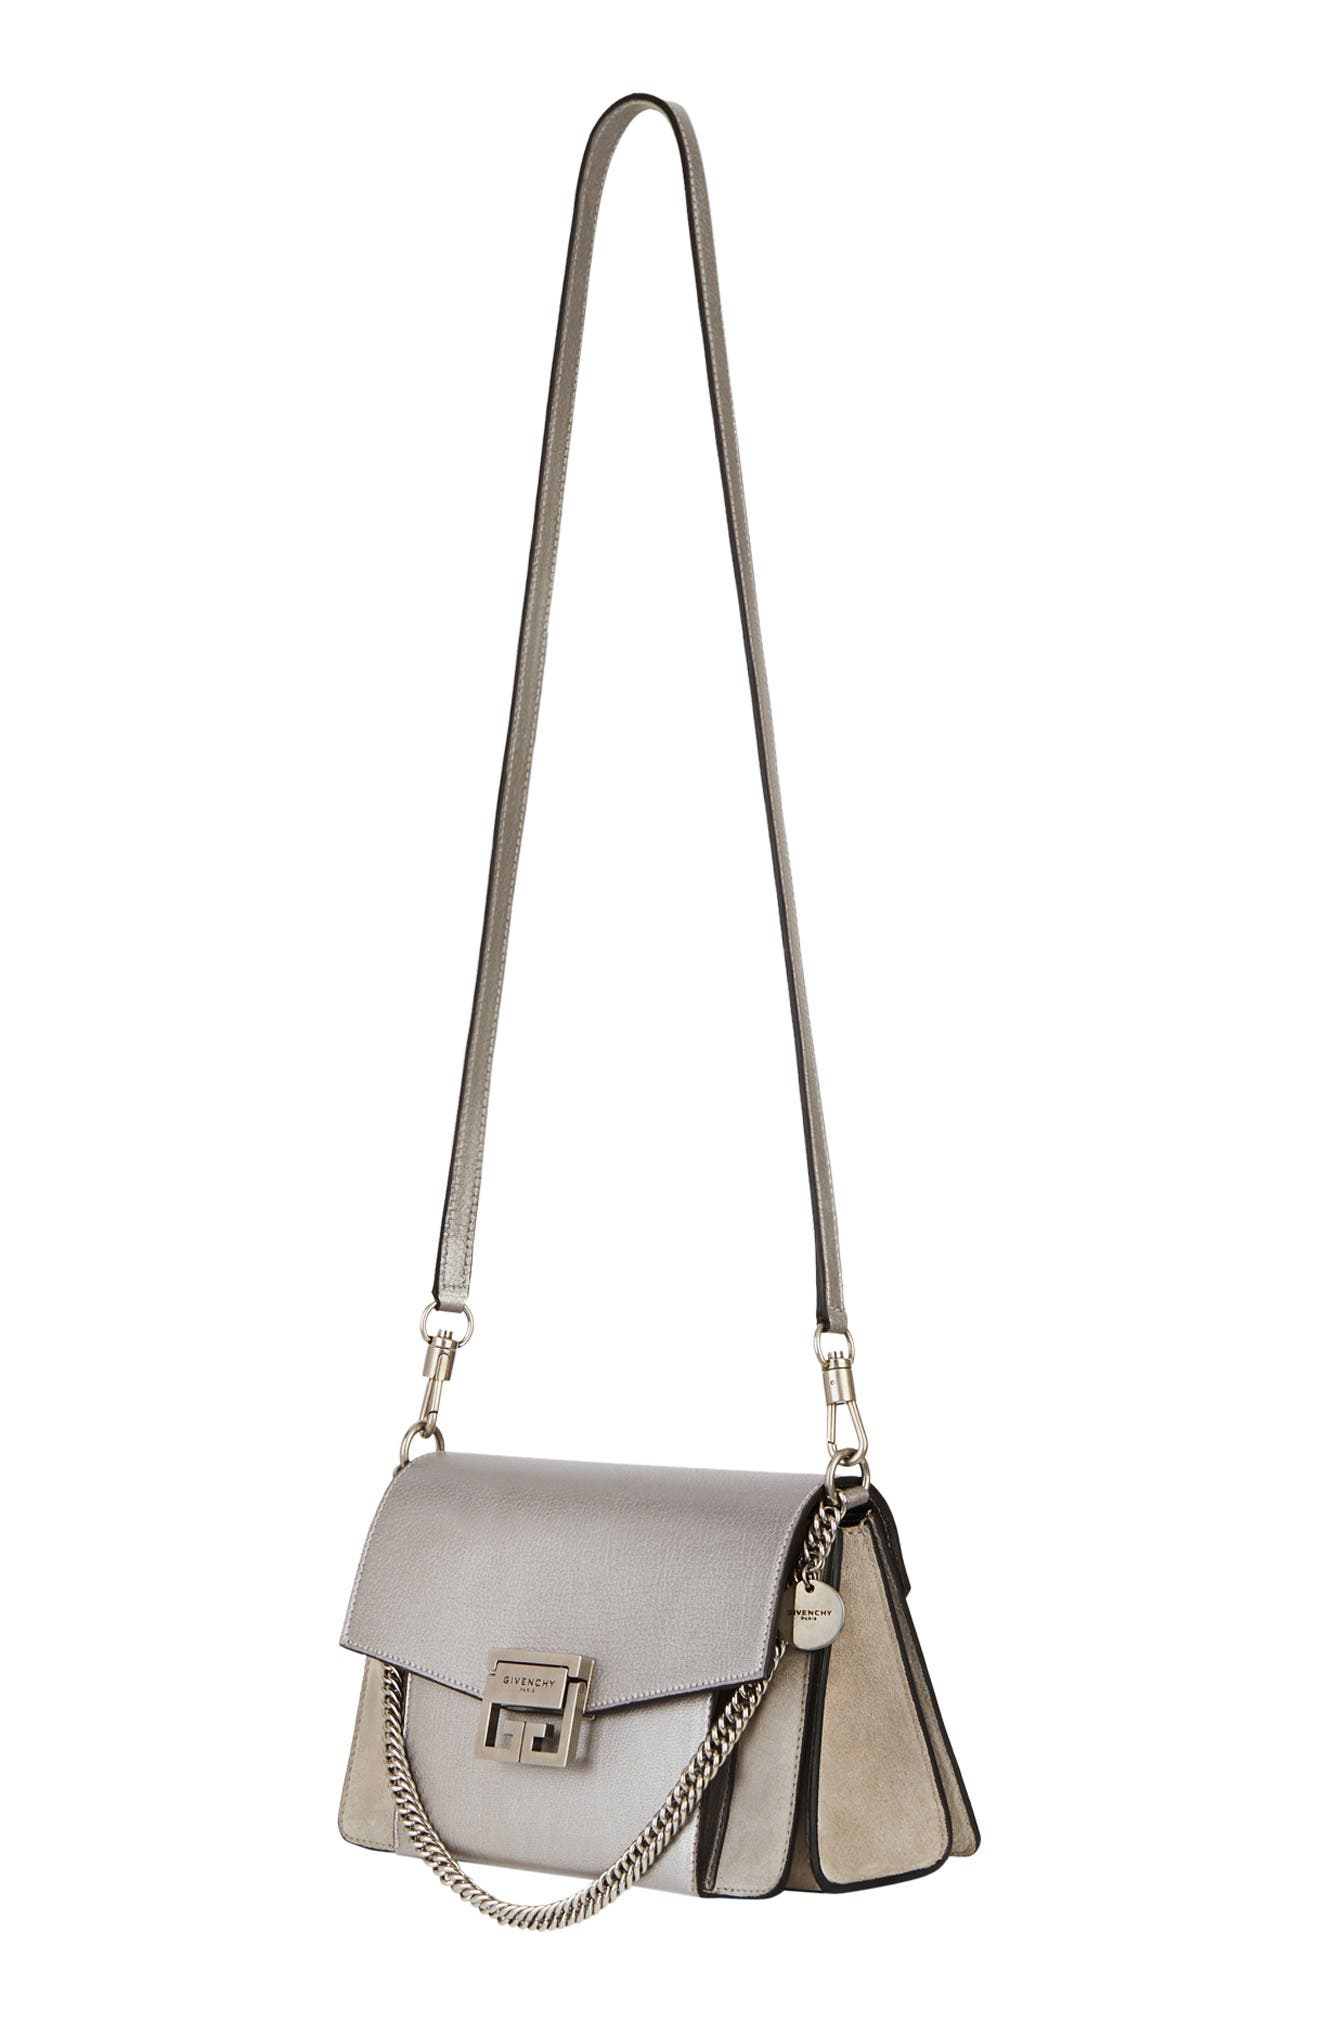 GIVENCHY,                             Small GV3 Leather & Suede Crossbody Bag,                             Alternate thumbnail 4, color,                             SILVER/ NATURAL